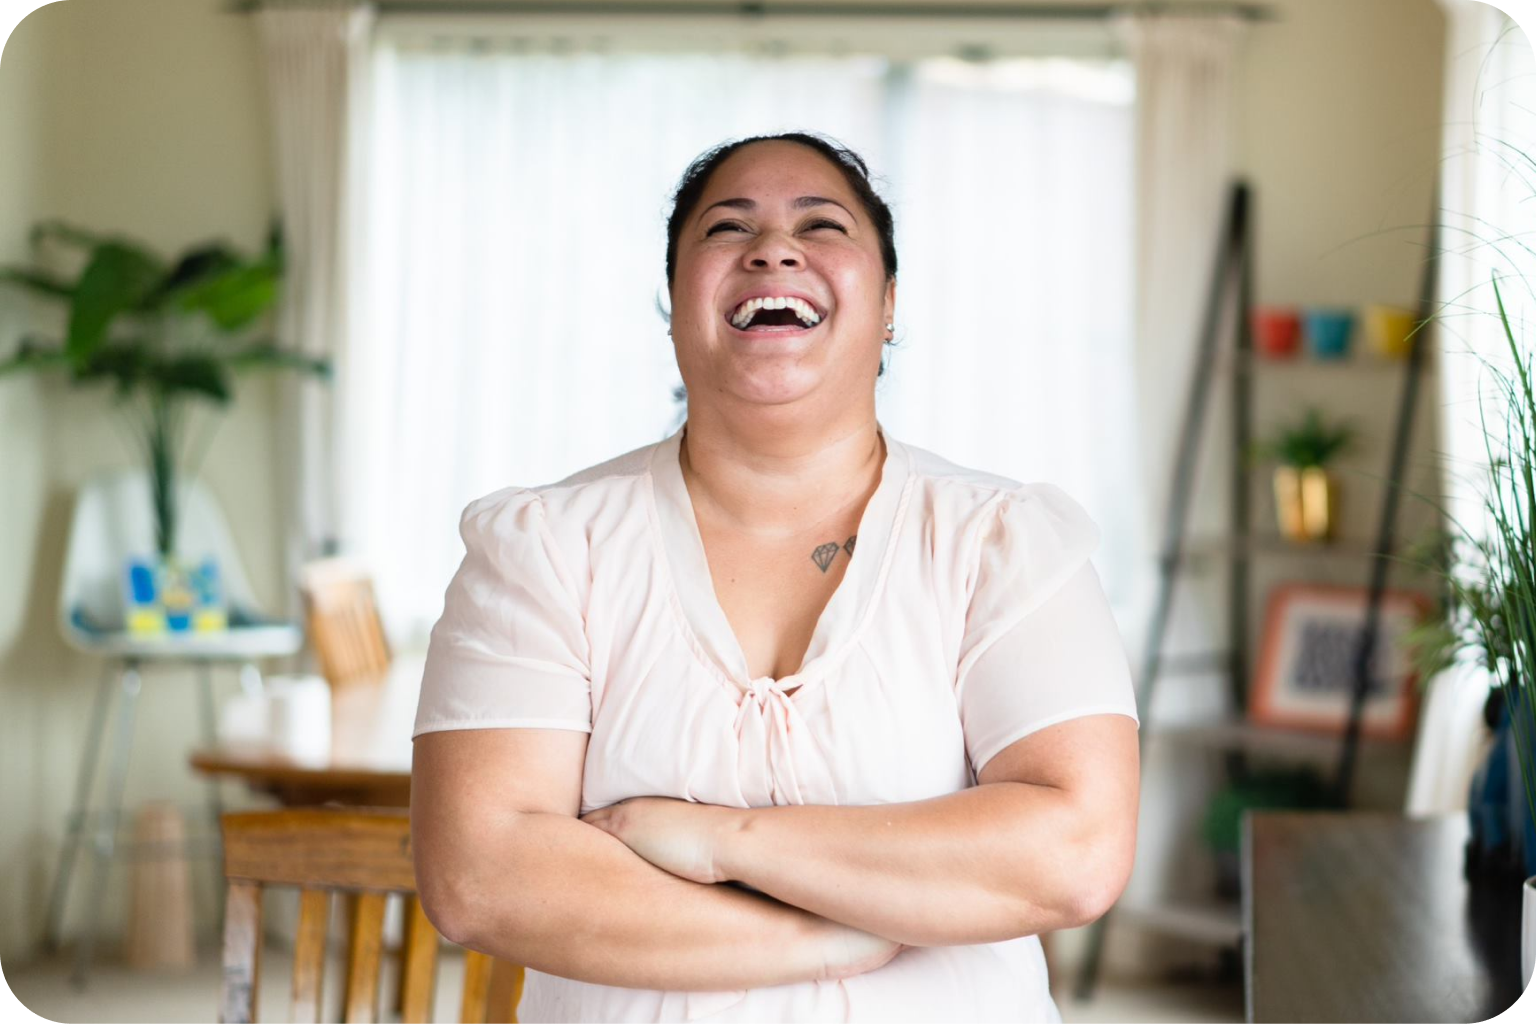 Woman in white shirt laughing